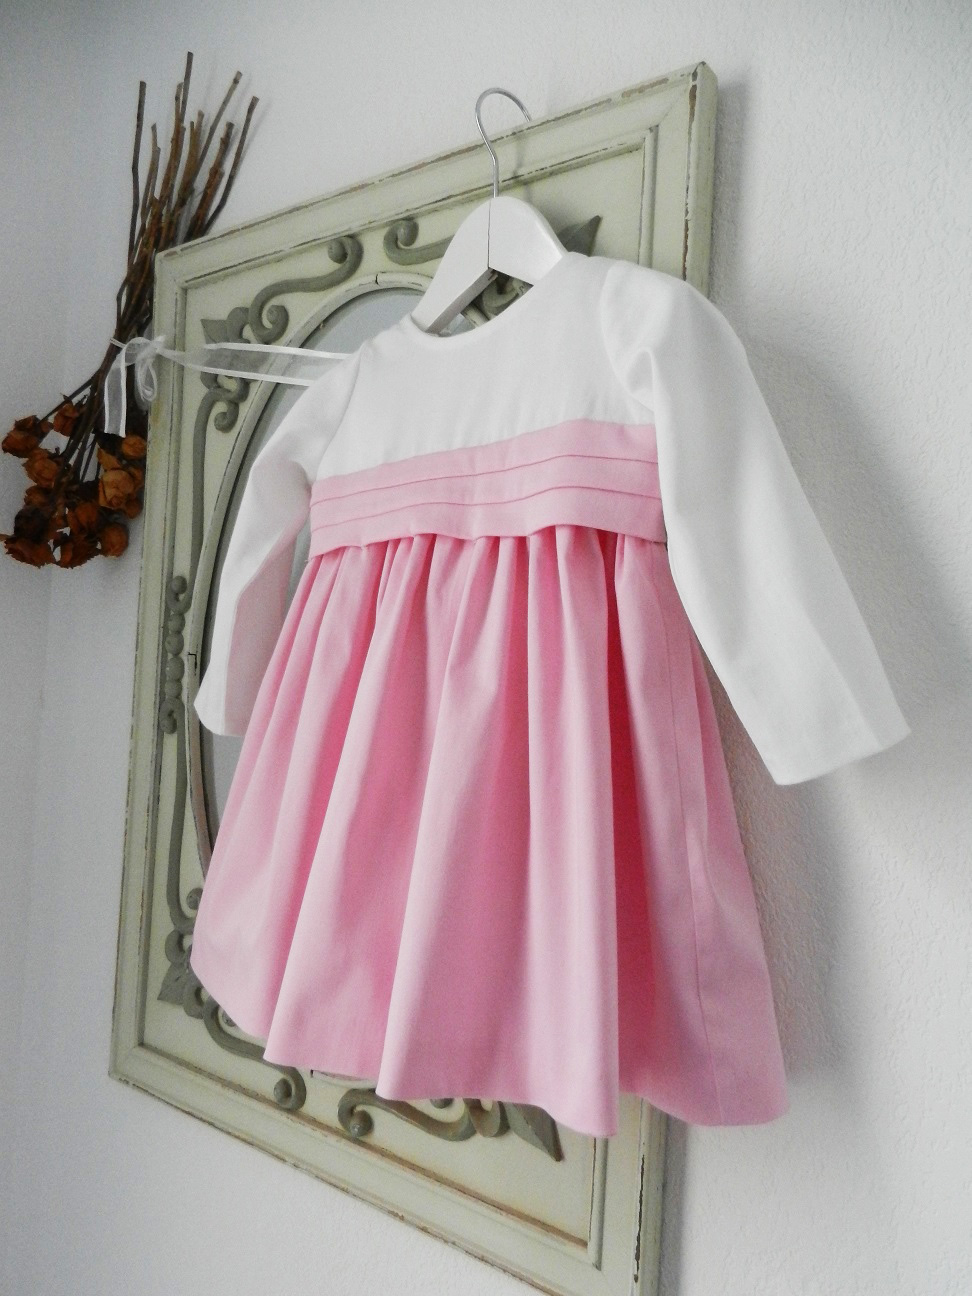 Duchesse or ange doa 283 robe bebe enfant rose blanche ceinture baby child dress pink white sash b